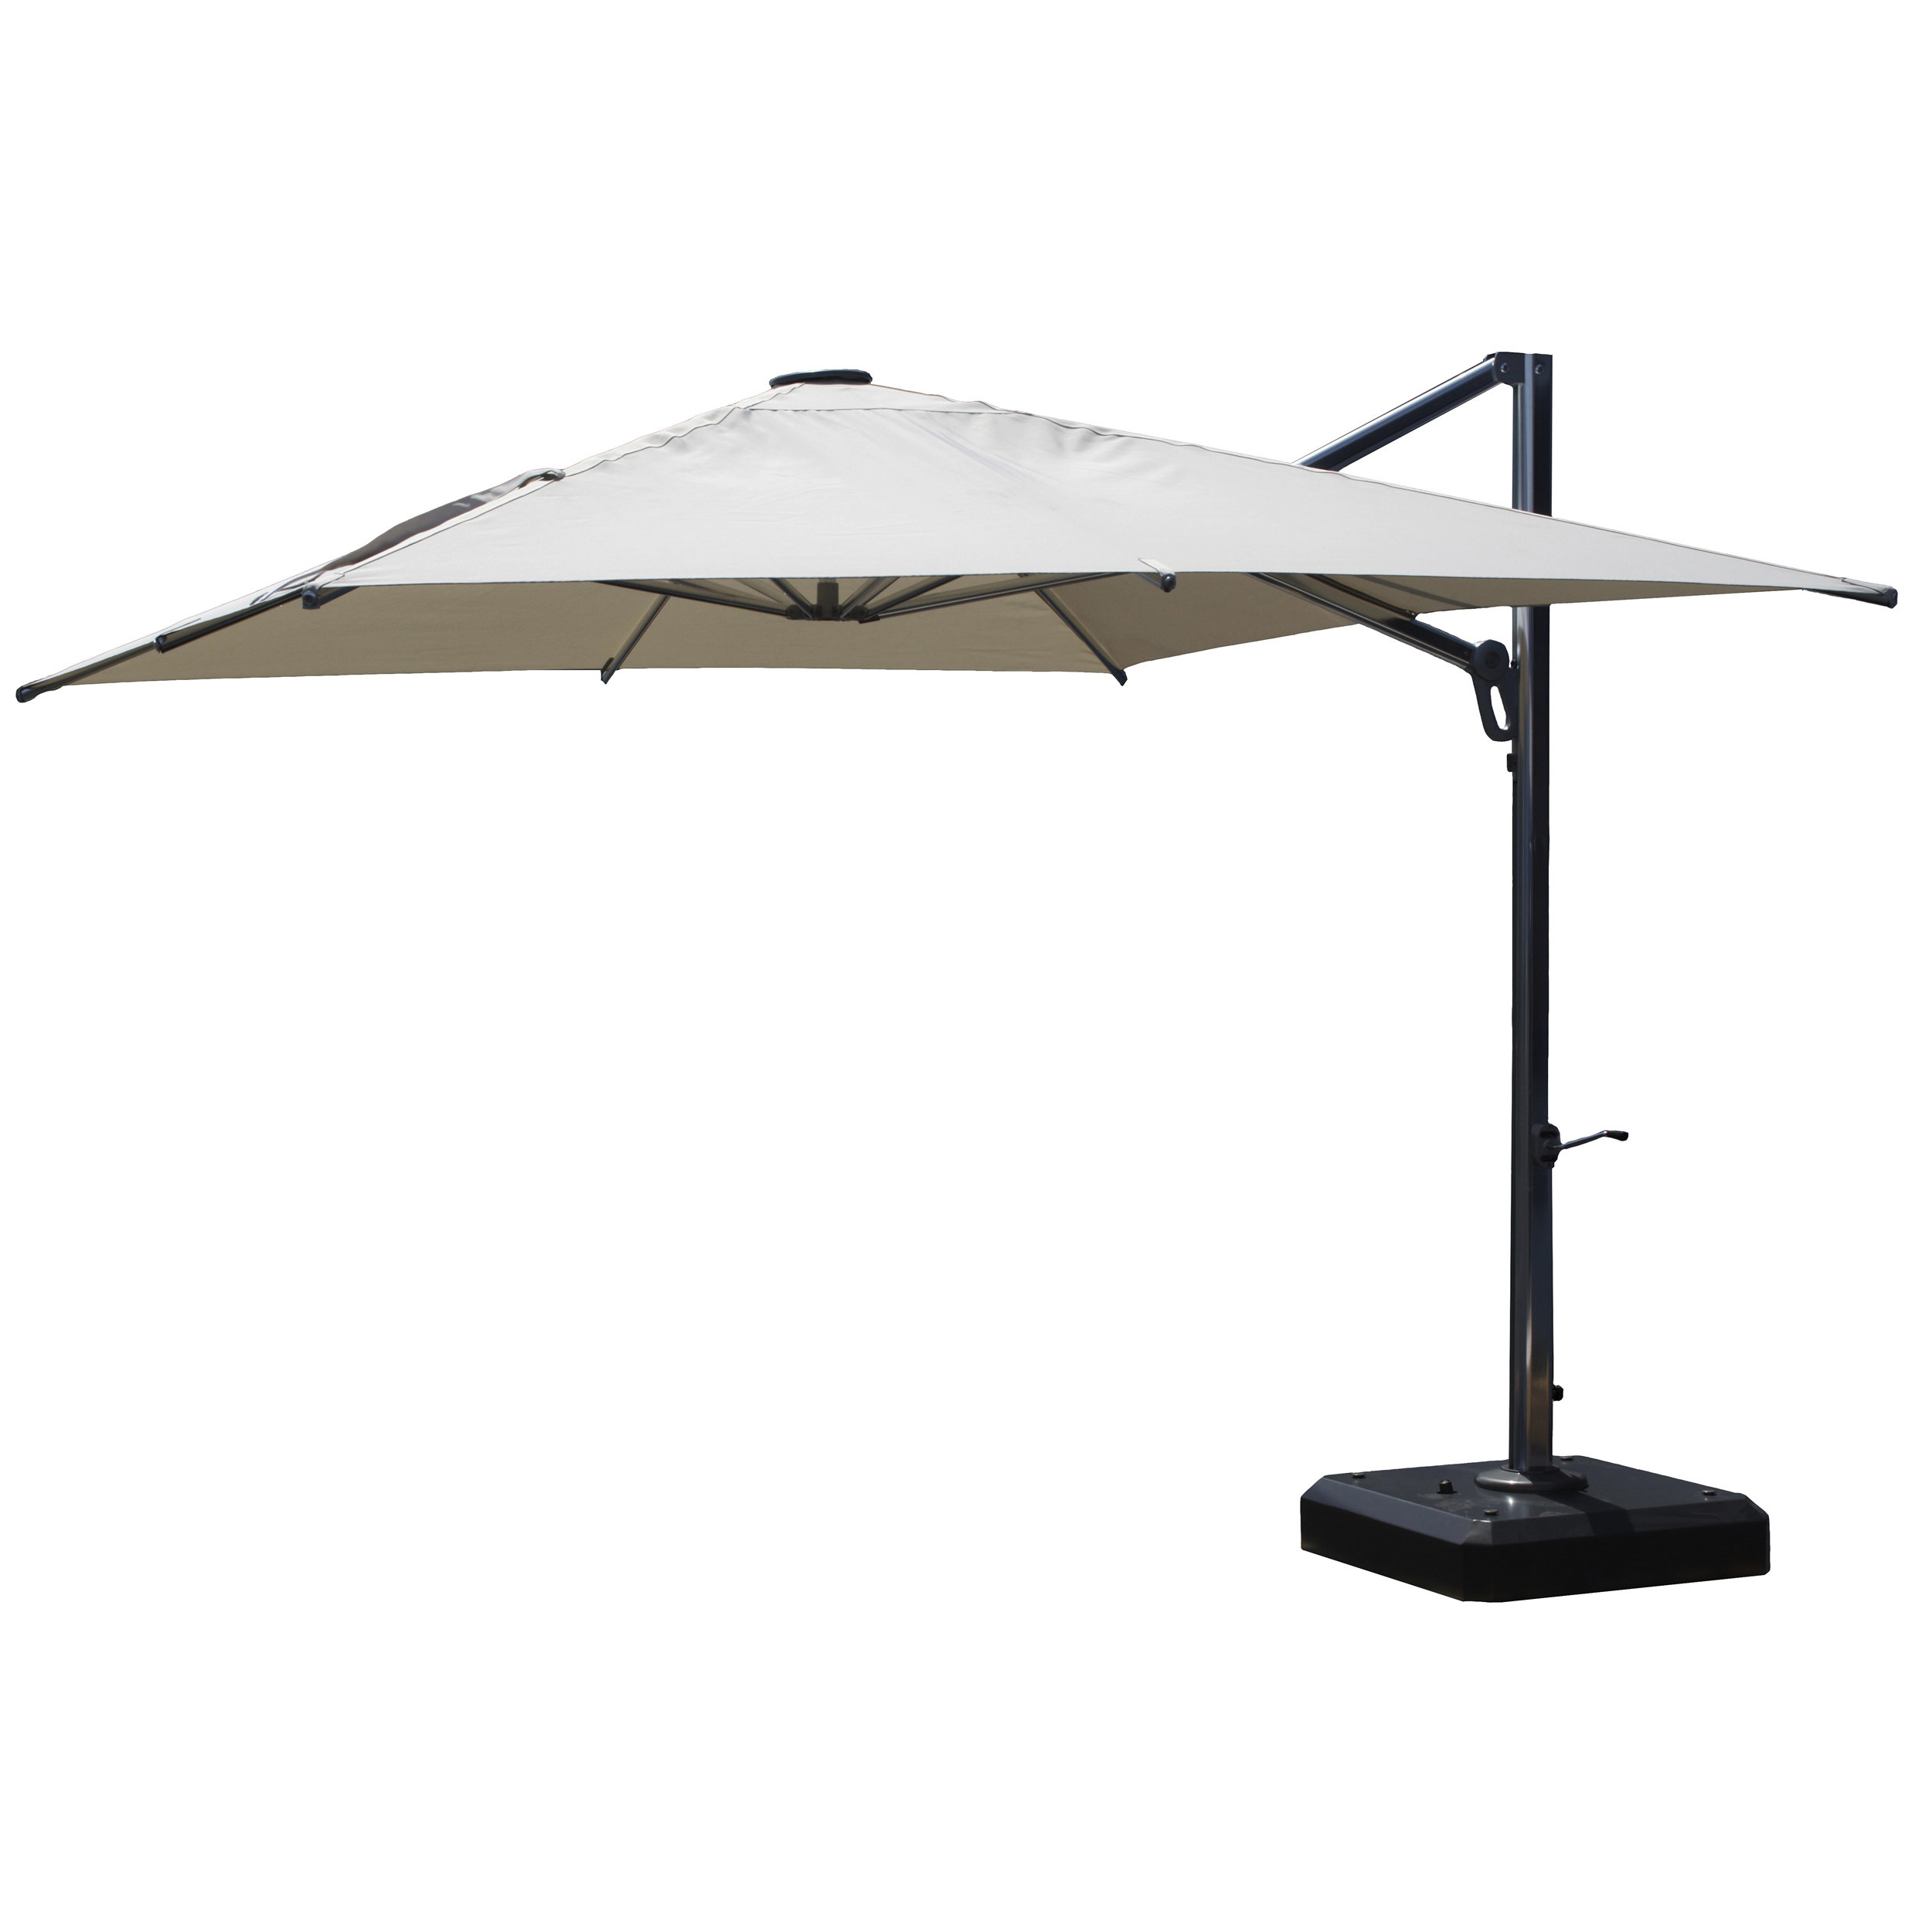 10' Square Cantilever Umbrella Pertaining To Well Known Frederick Square Cantilever Umbrellas (View 1 of 20)